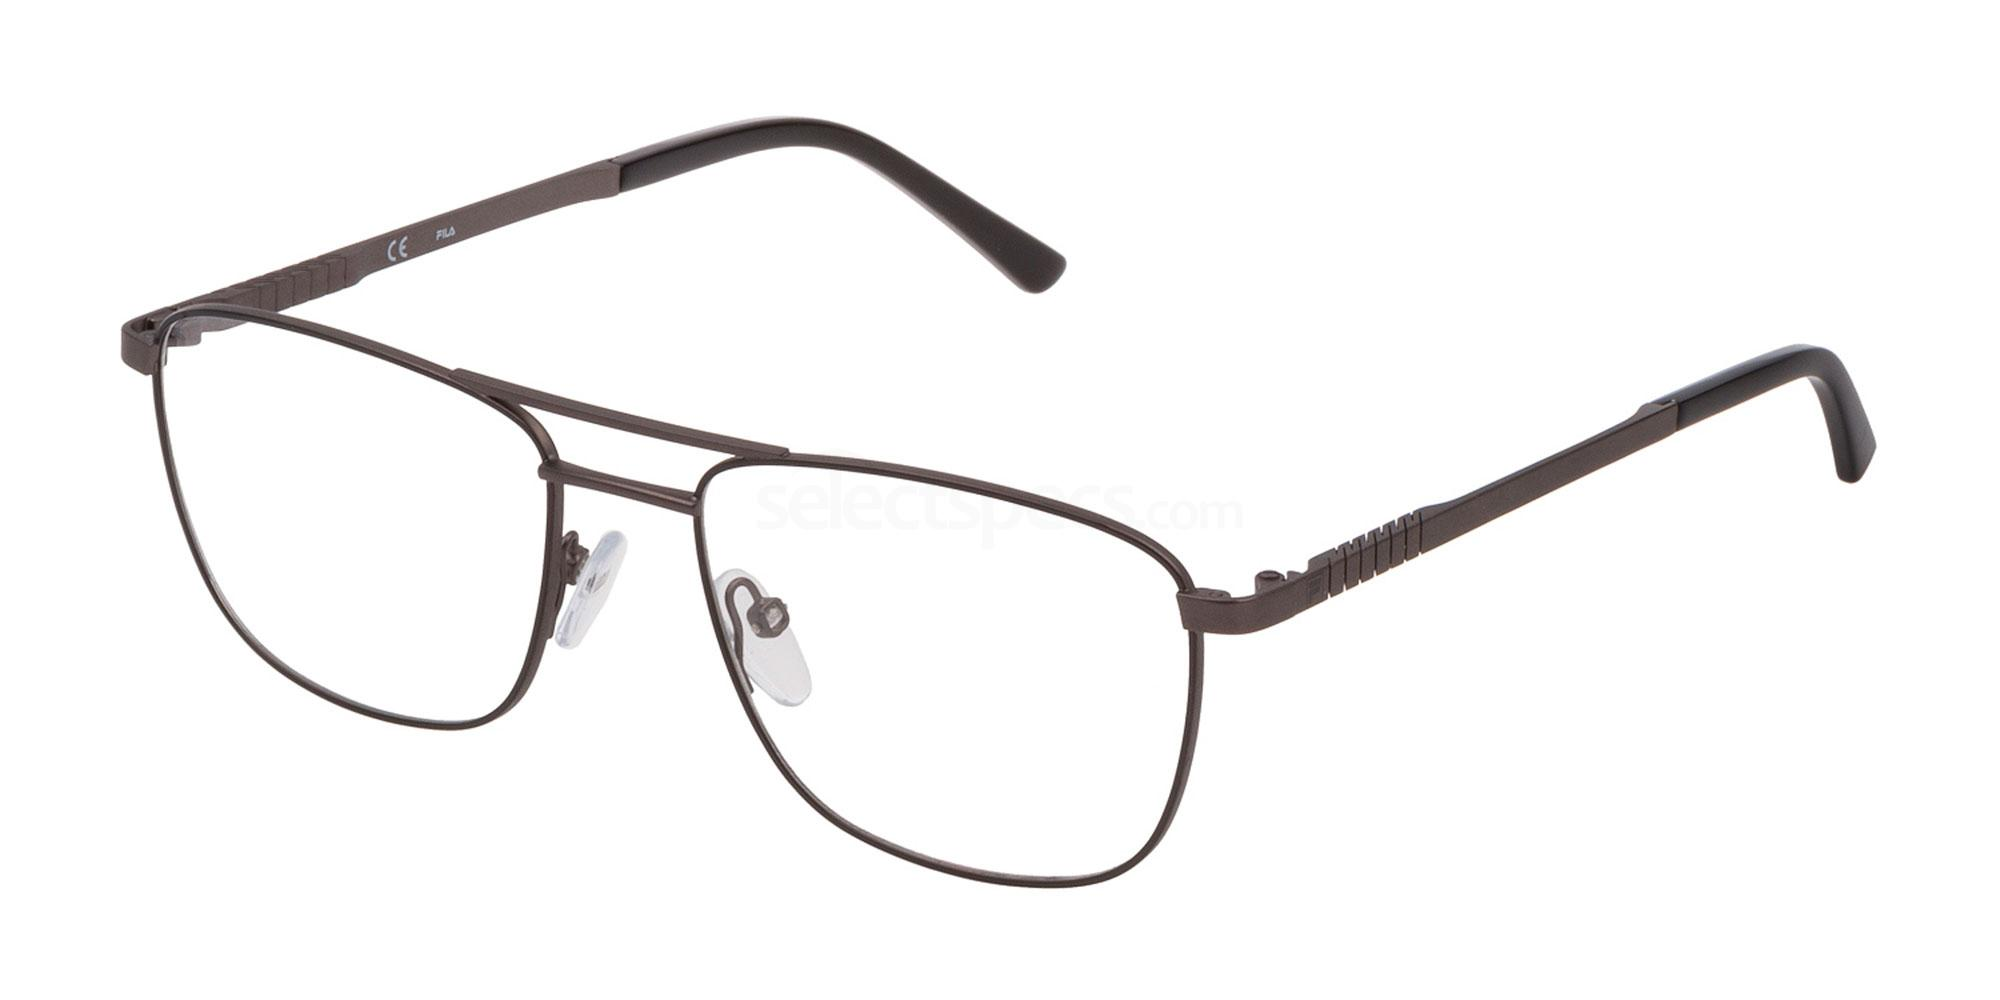 08Y8 VF9941 Glasses, Fila